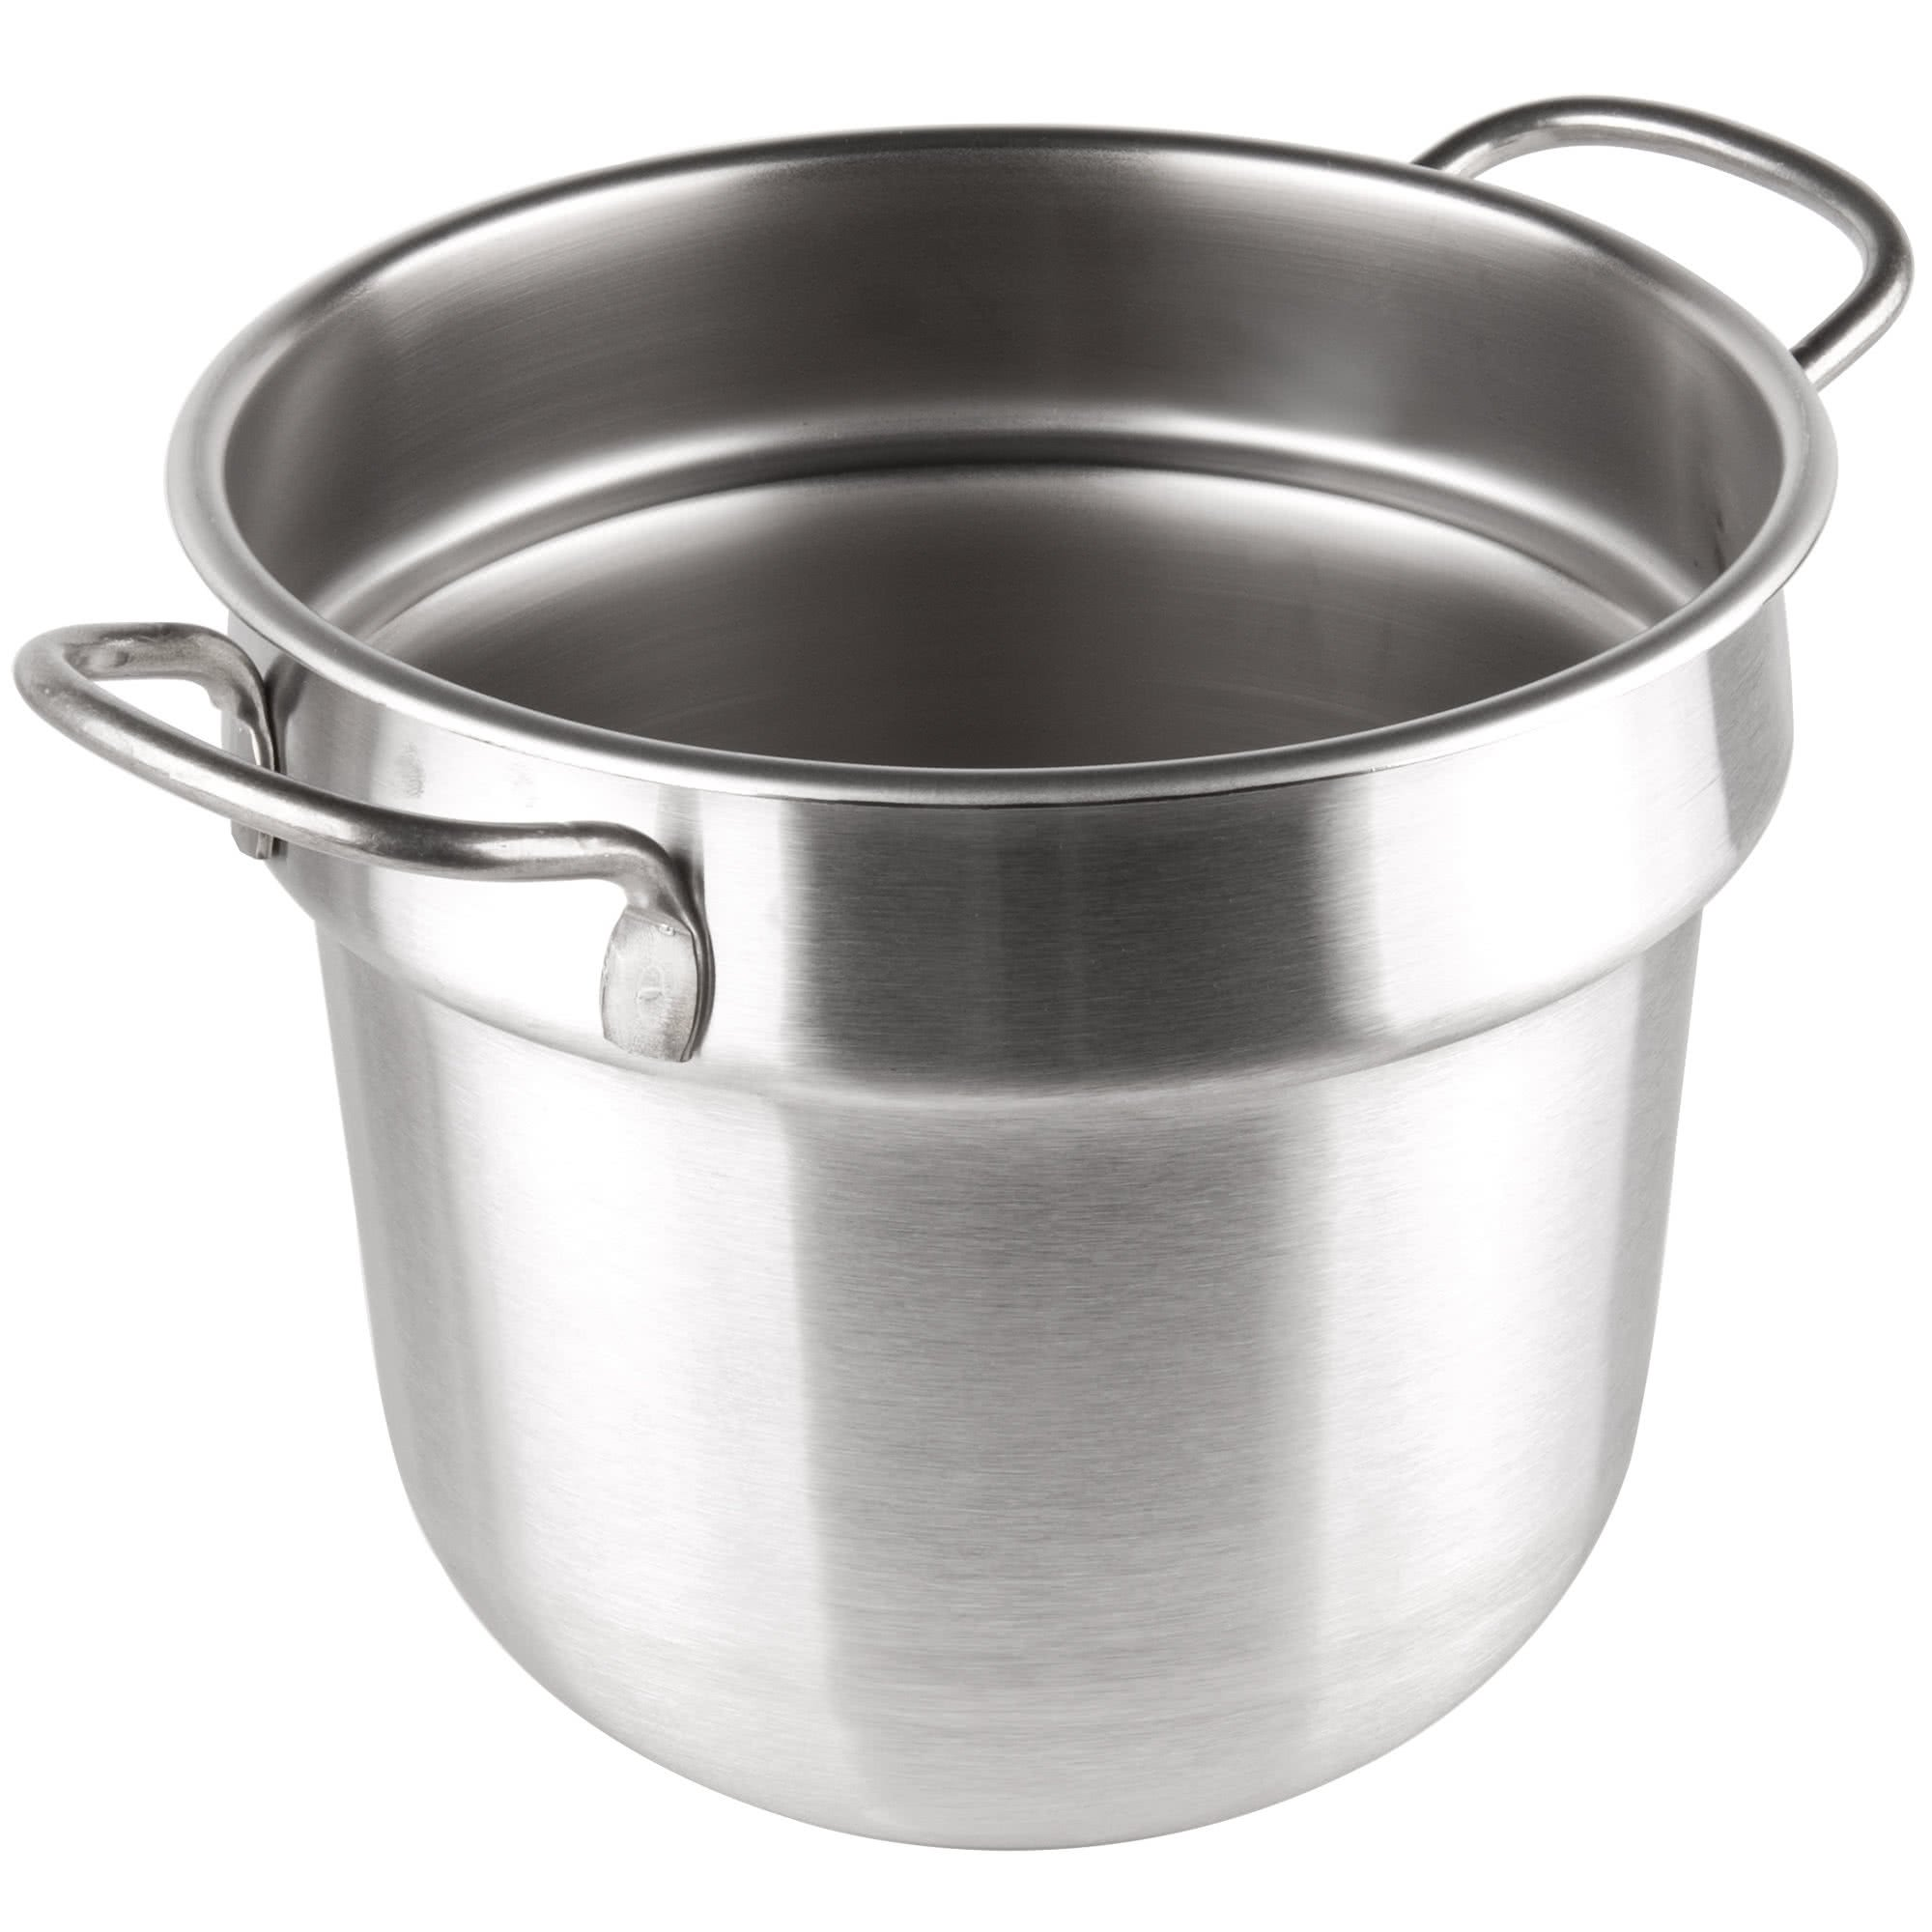 Tabletop king 77073 7 Qt. Stainless Steel Double Boiler Inset - Round Bottom